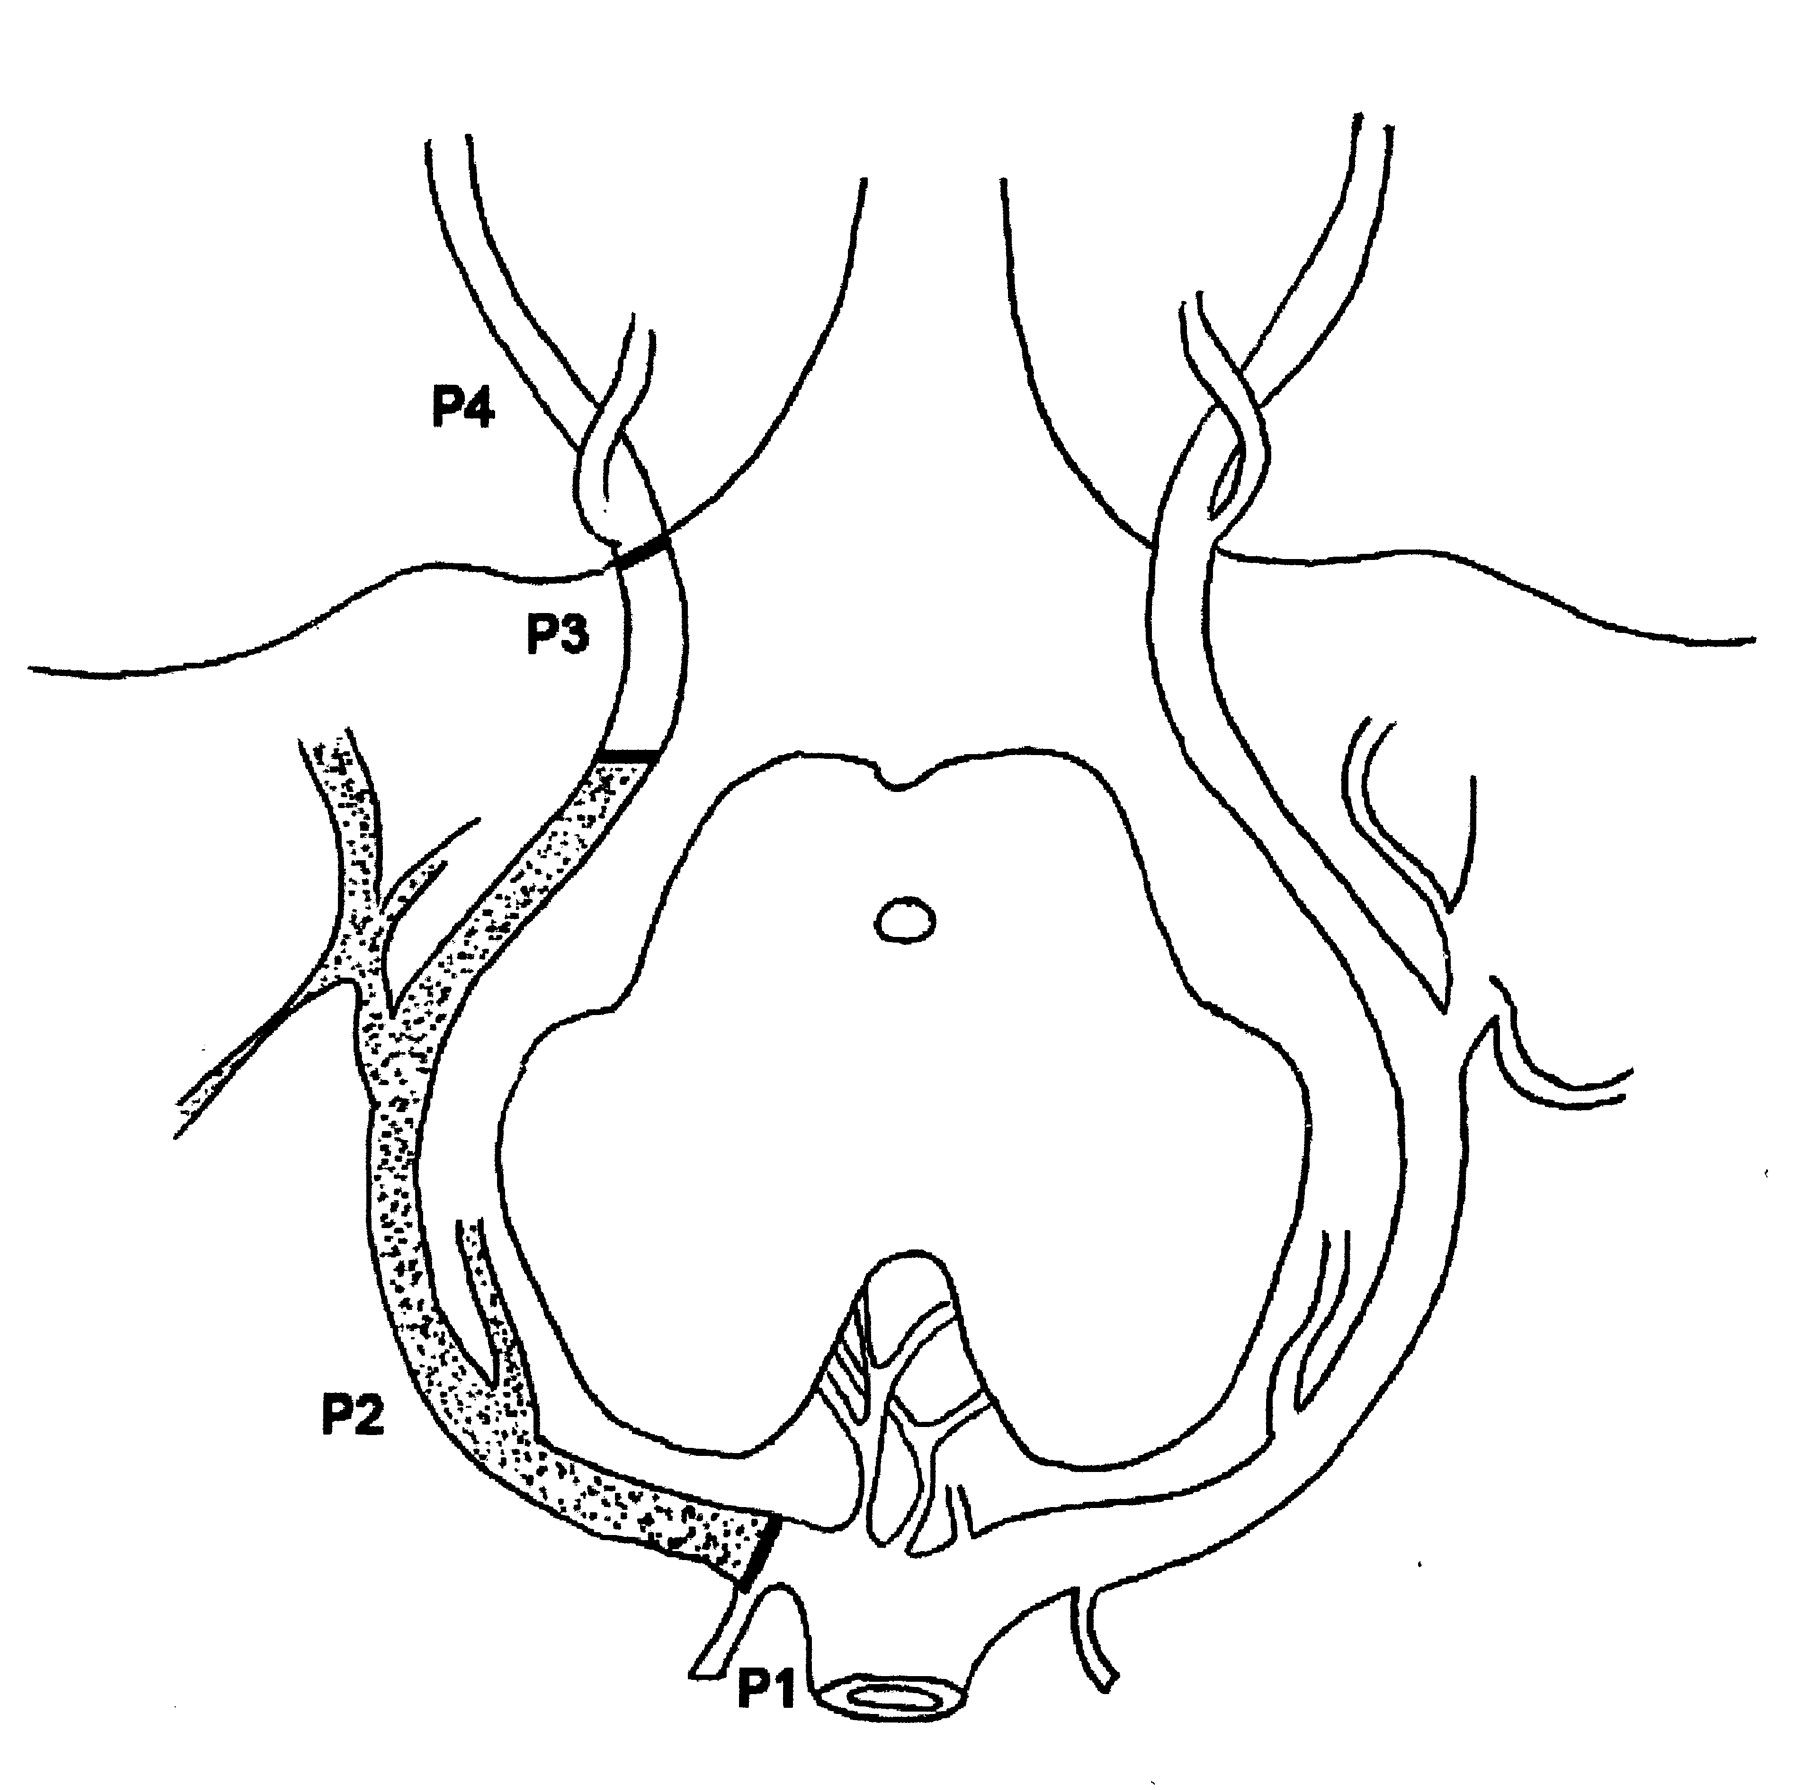 Endovascular Occlusion Of The Posterior Cerebral Artery For The